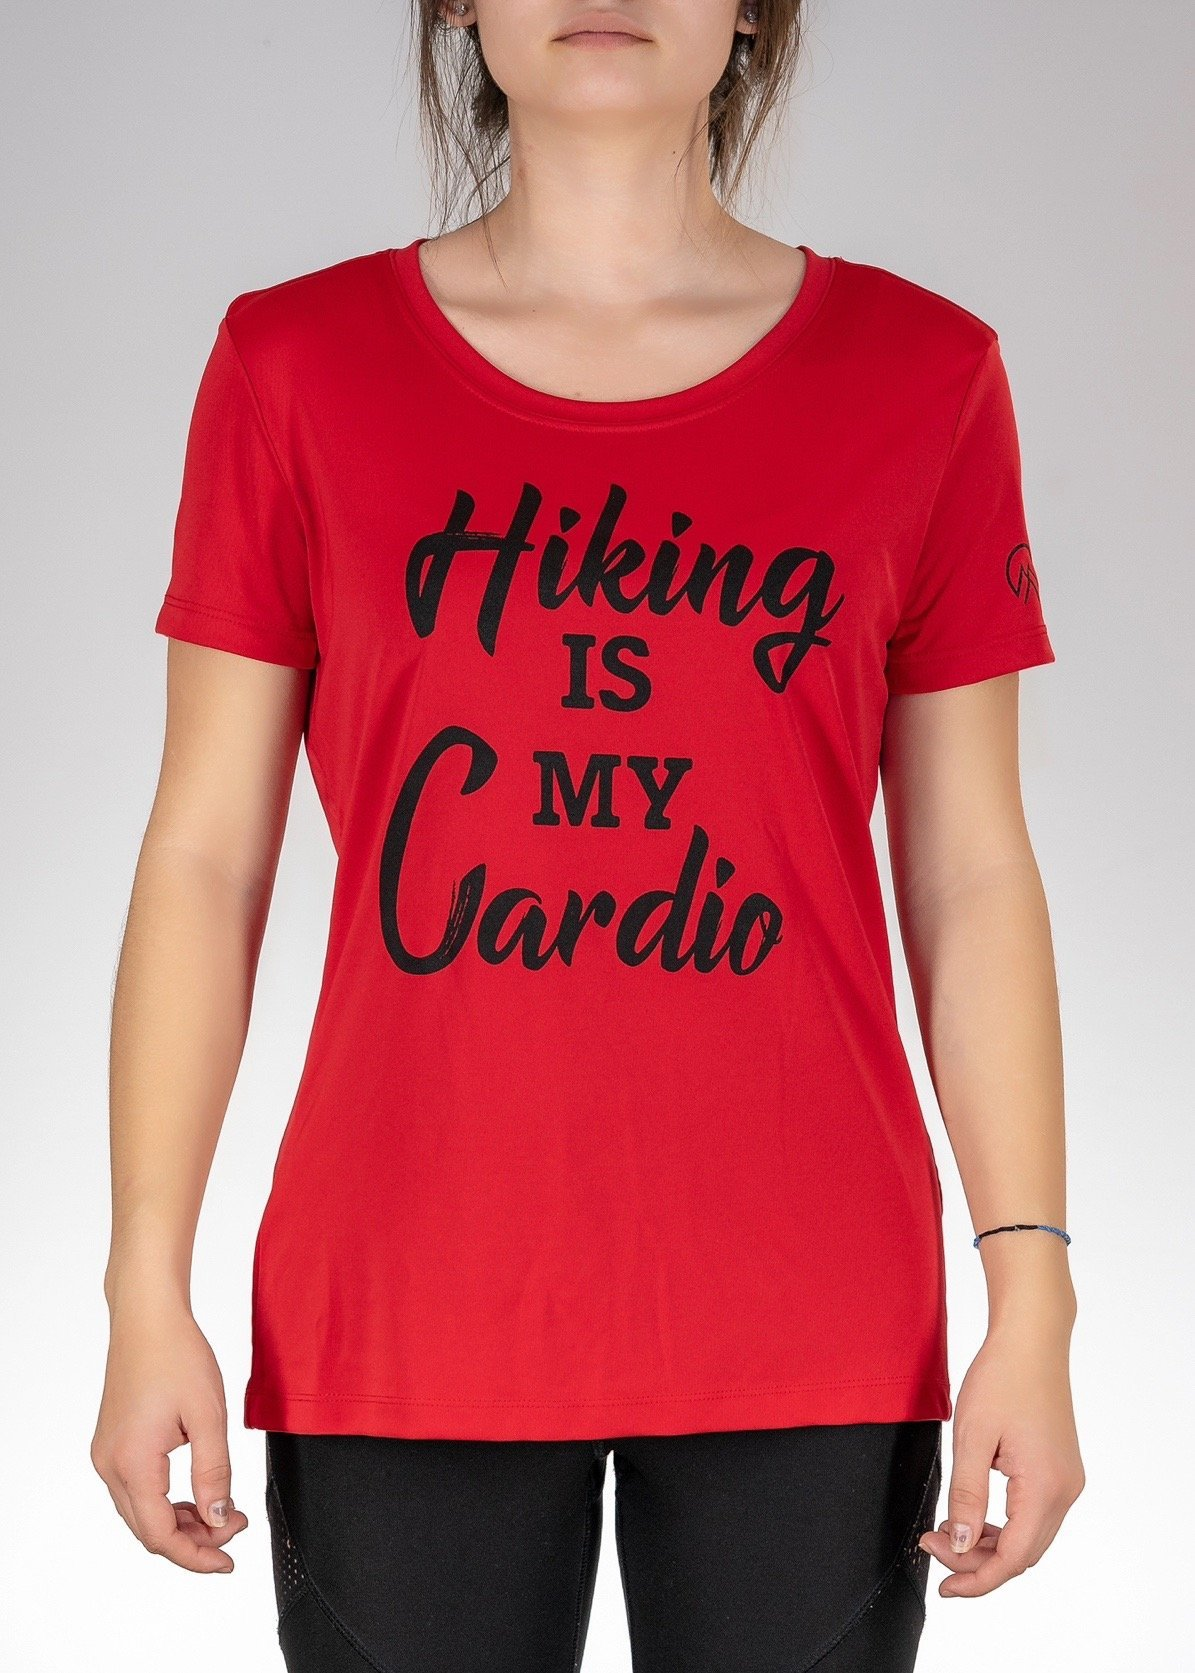 Apparel .Hiking is My Cardio! Poly Tee - Sport Scarlet Red